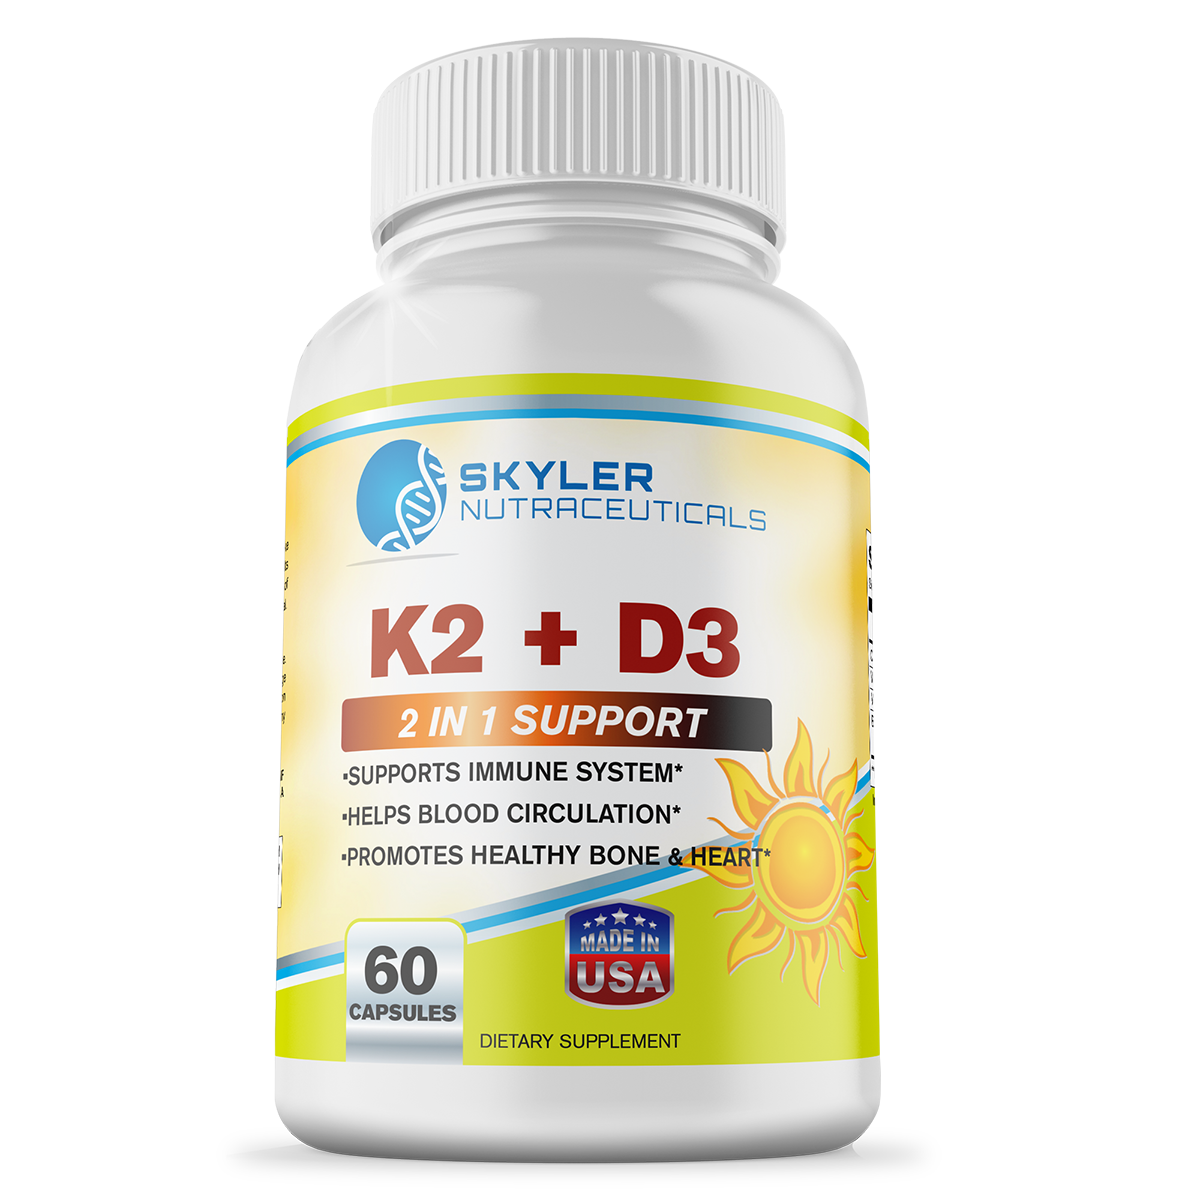 Vitamin K2 and D3 Premium Natural Dietary Health Supplement by Skyler Nutraceuticals 60 Capsules